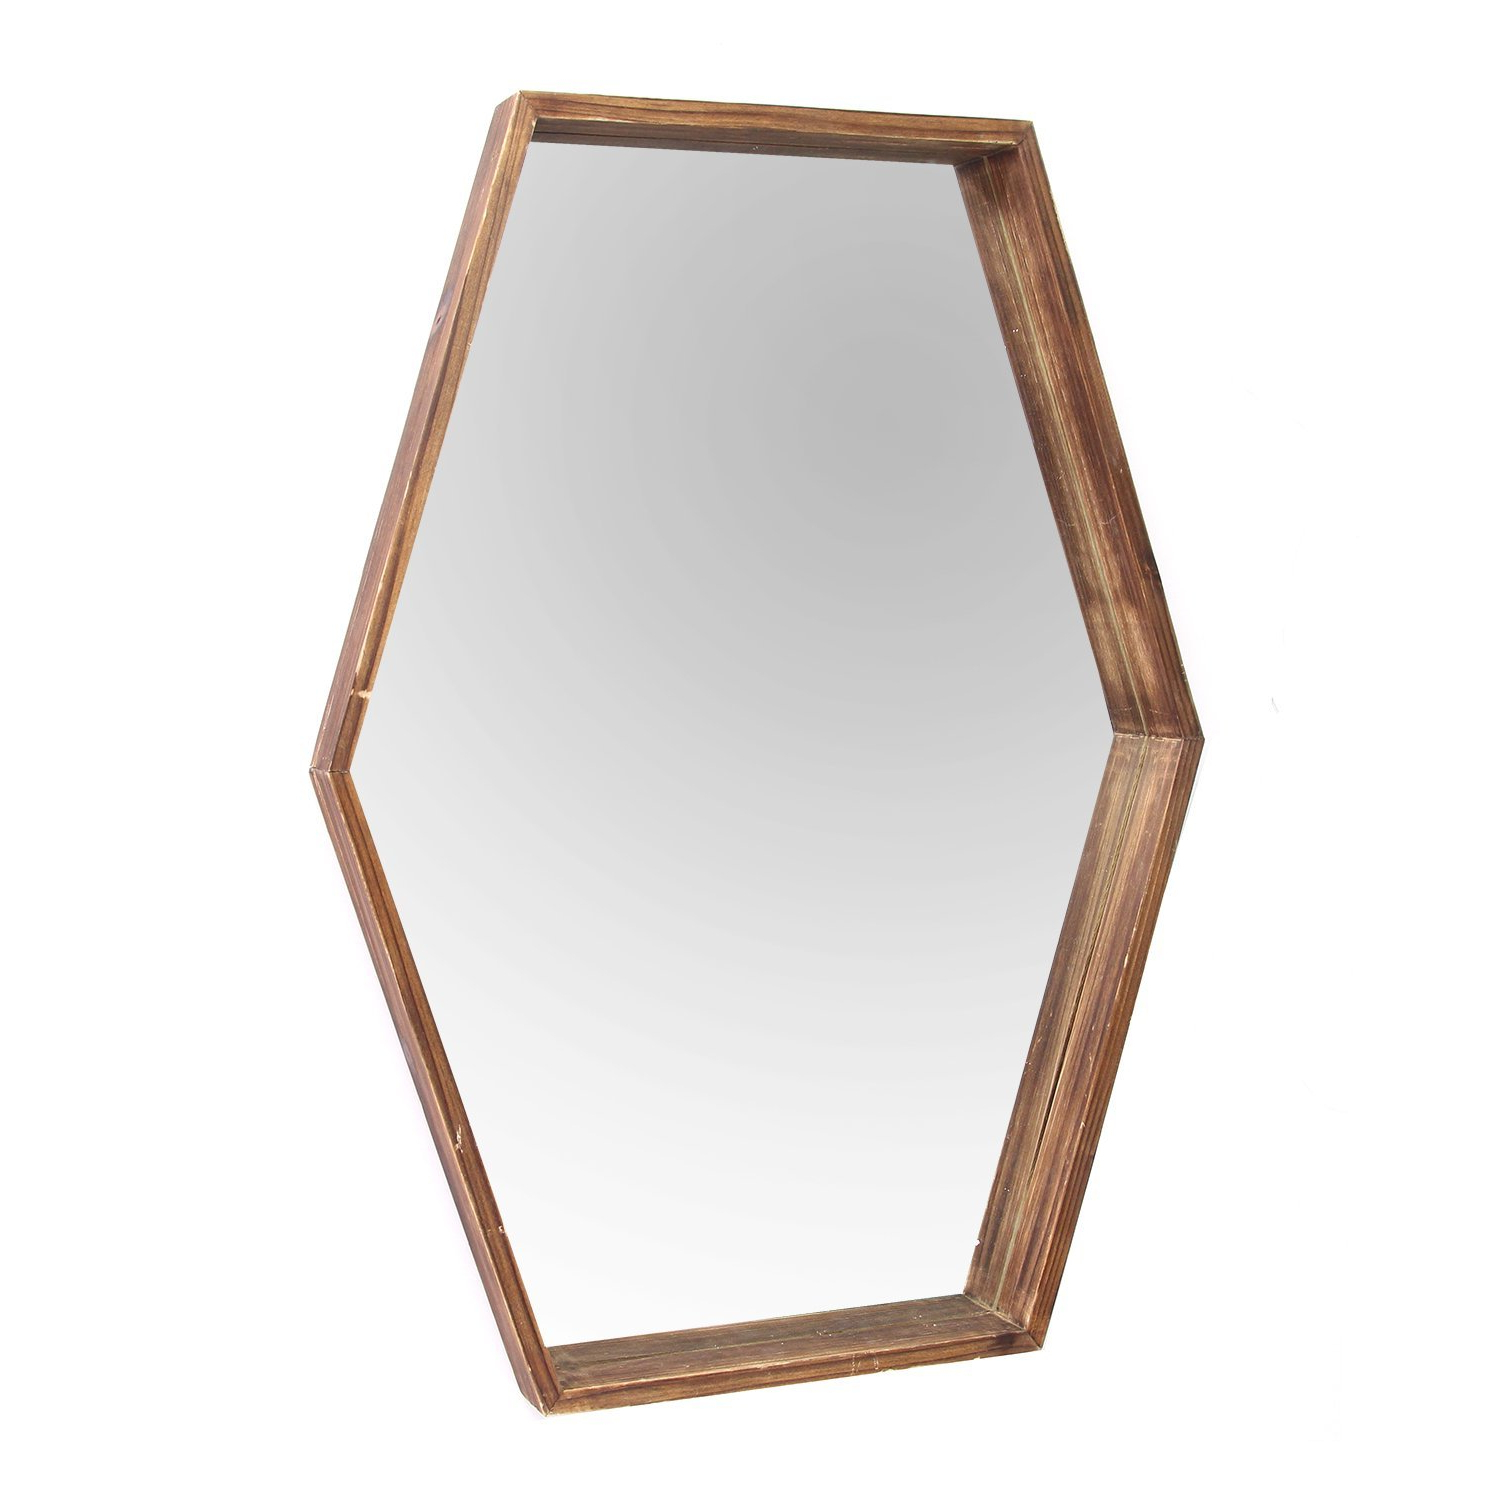 Corey Wood Accent Mirror Pertaining To Widely Used Wood Accent Mirrors (Gallery 9 of 20)